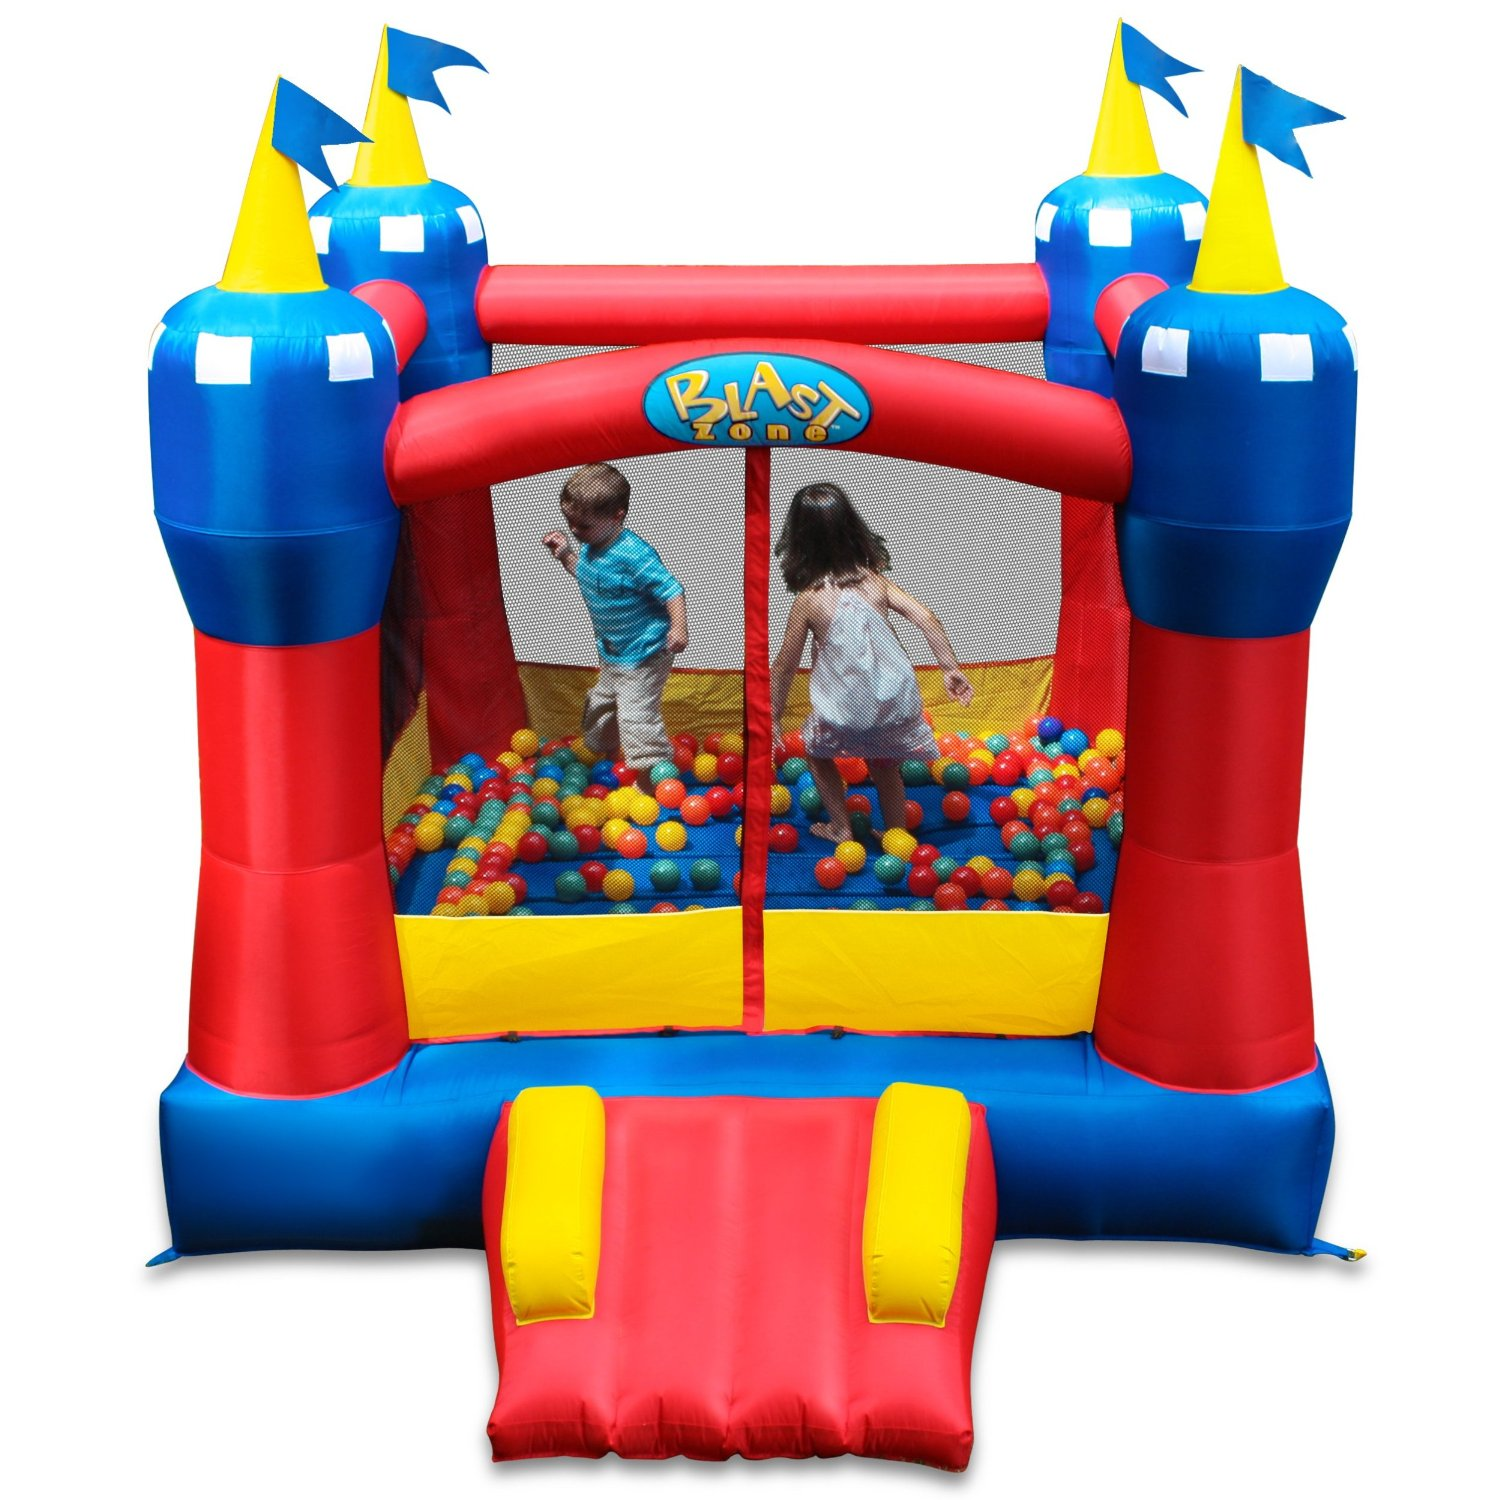 Pretty Little Tikes Bounce House Made Of Caoutchouc In Castle Design For Kids Play Room Ideas